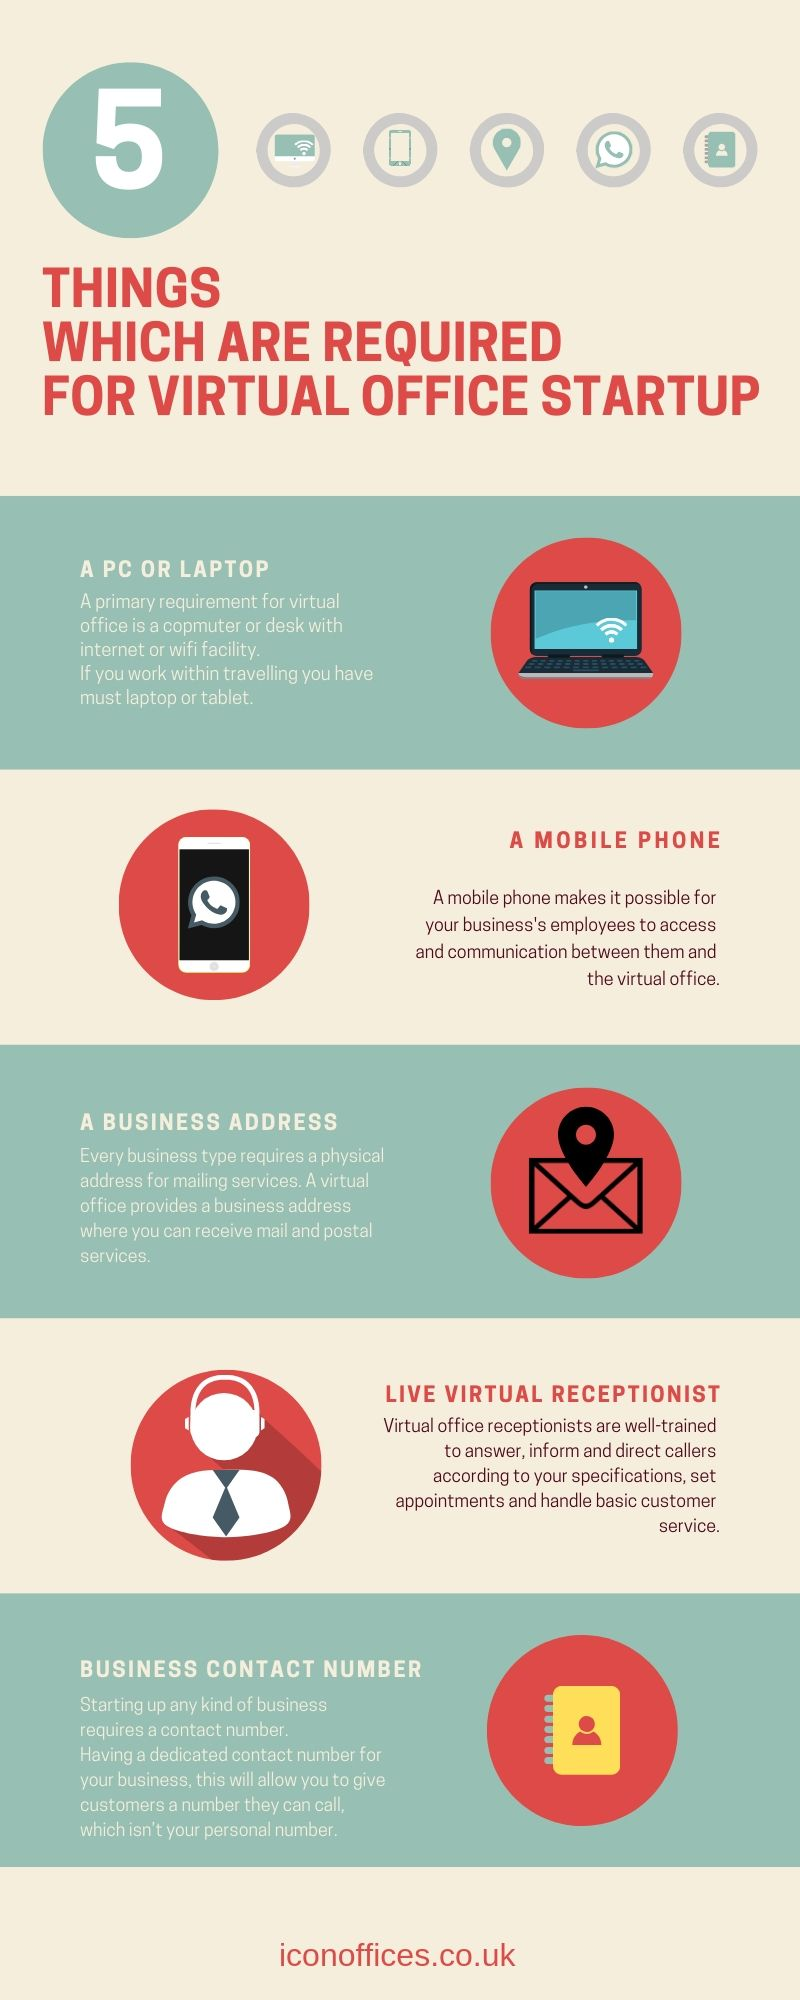 This infographic represents, 5 things required when you